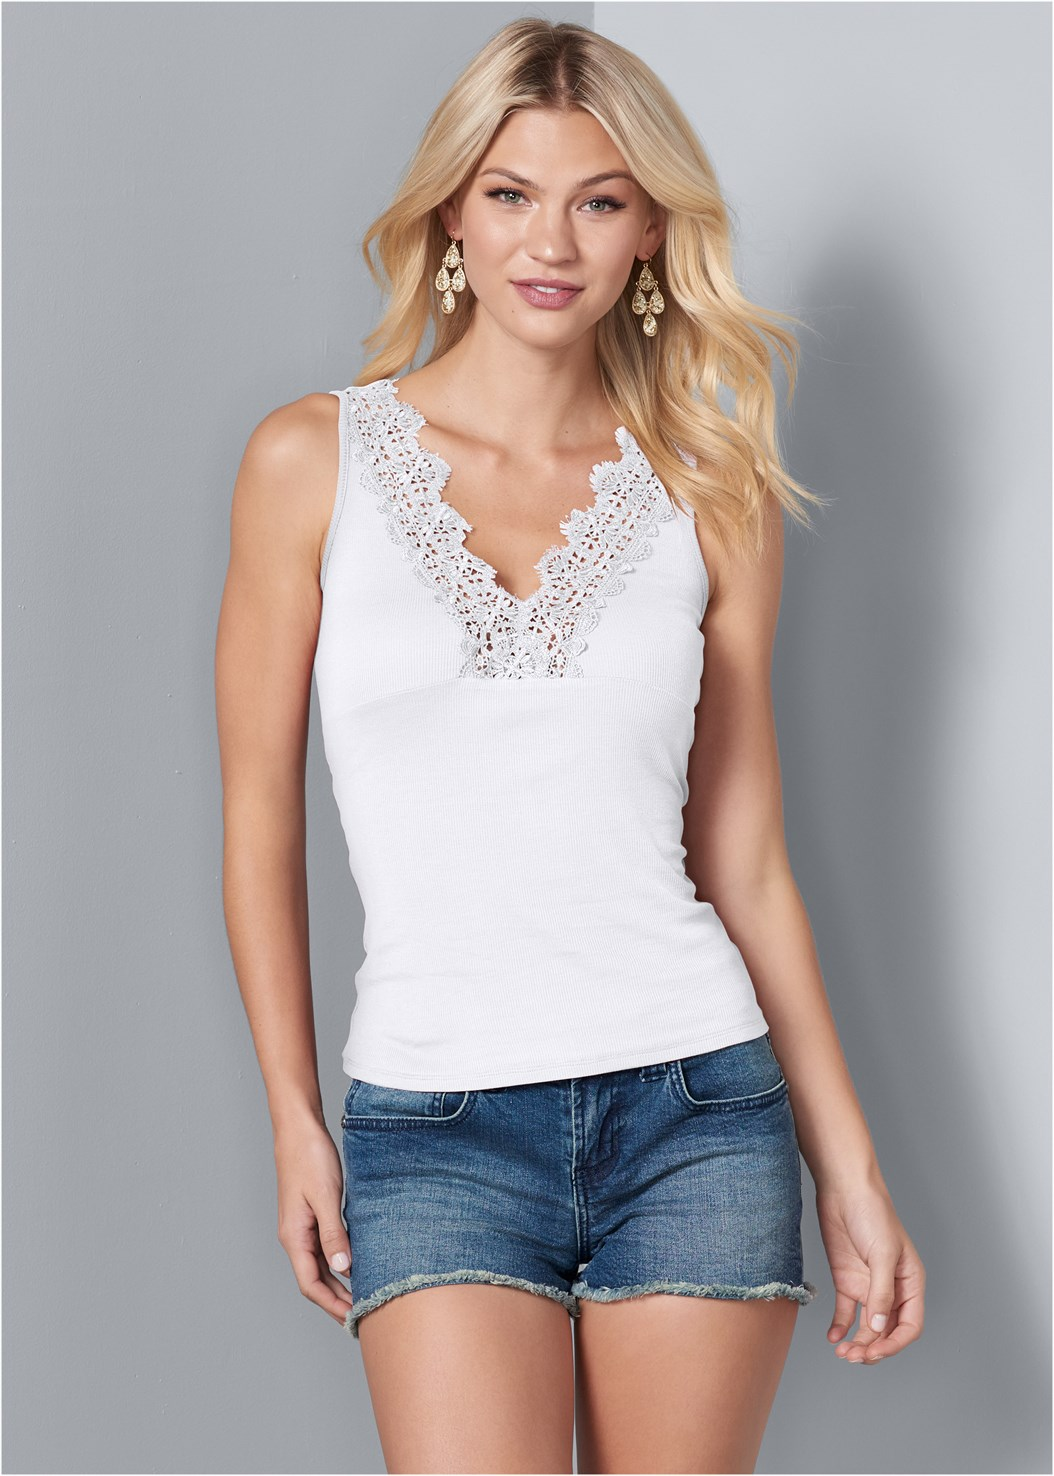 Lace Detail V-Neck Top,Frayed Cut Off Jean Shorts